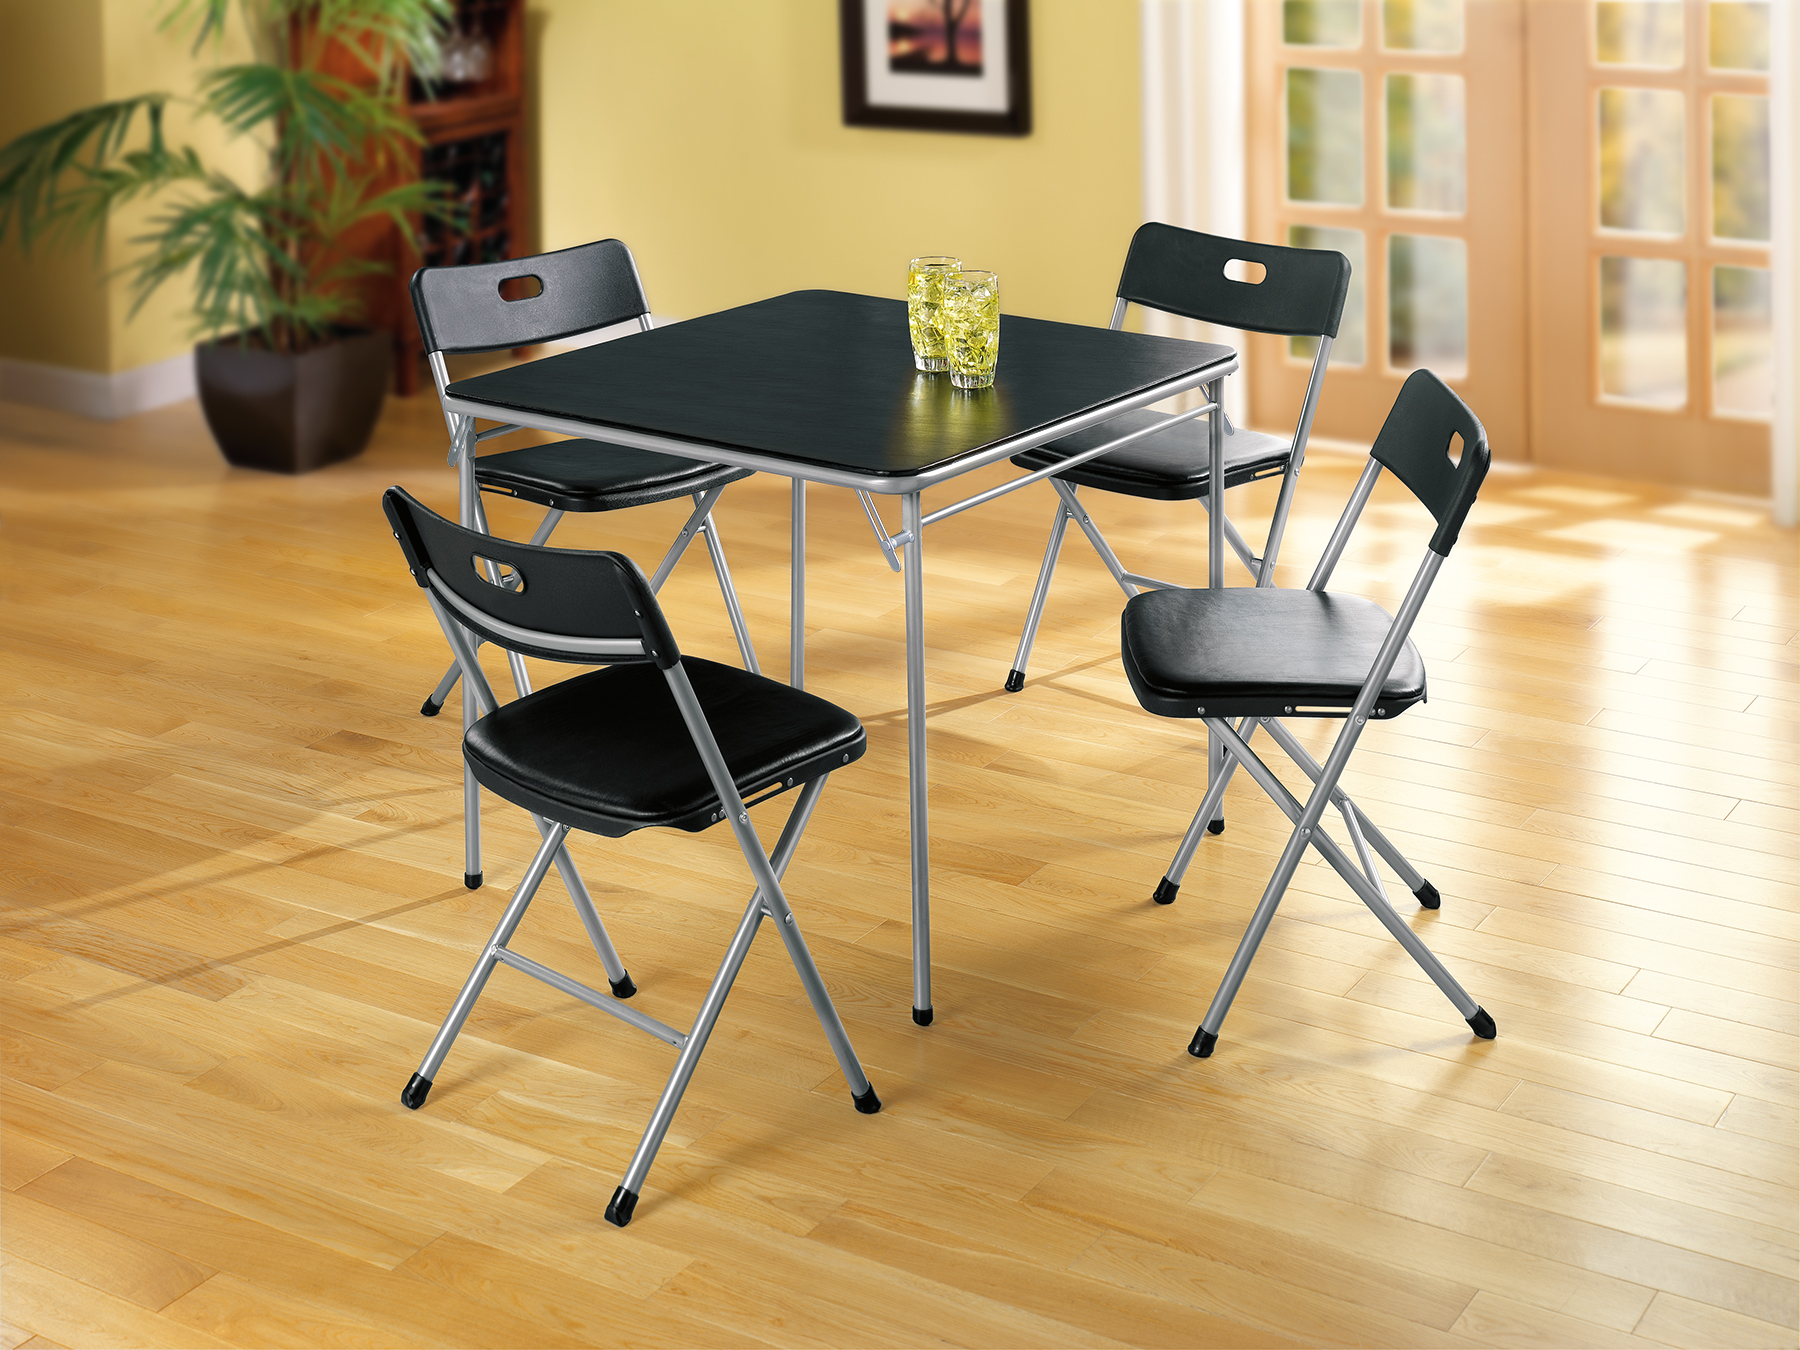 Folding Card Table And Chairs Essential Home 5 Piece Card Table And Chairs Home